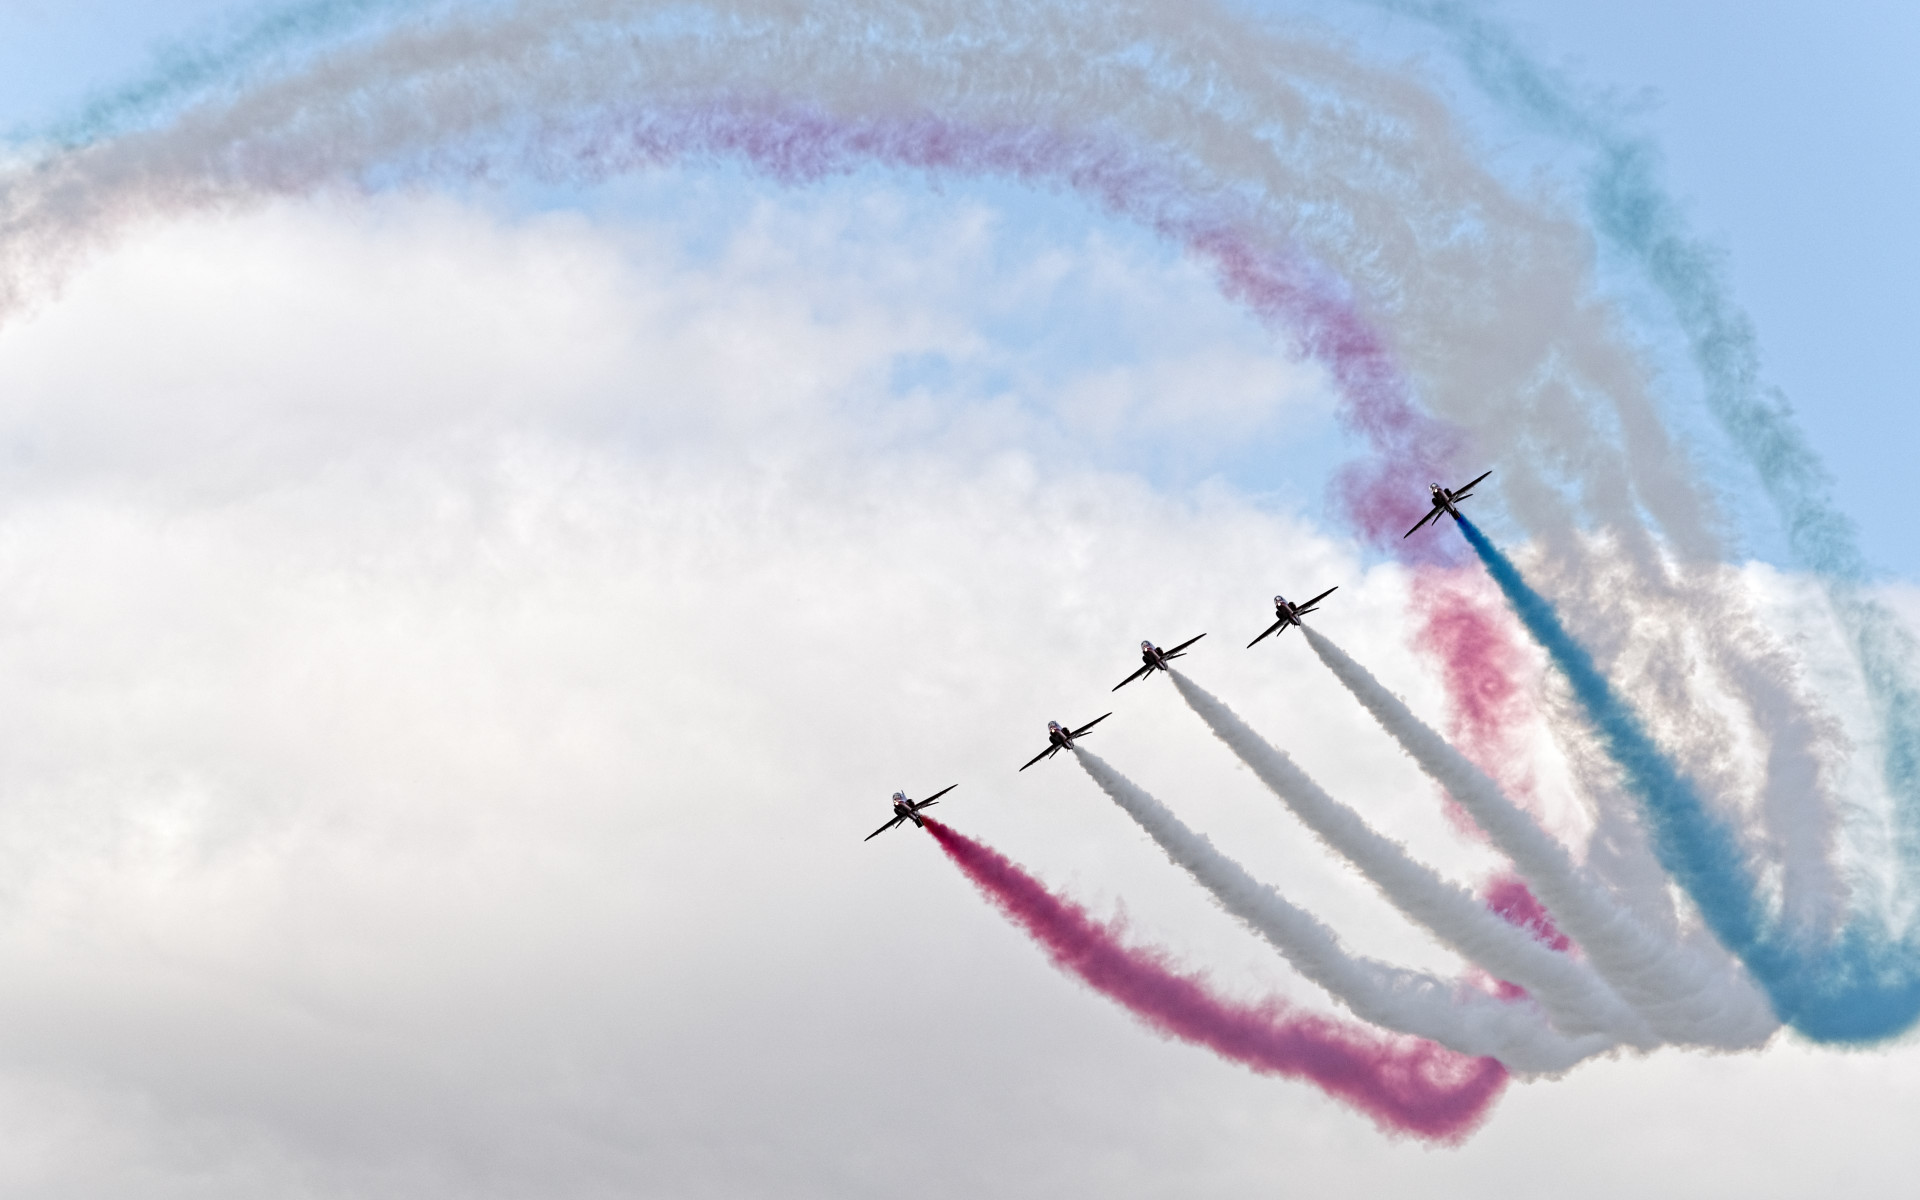 Red Arrows at Sywell Air Show wallpaper 1920x1200